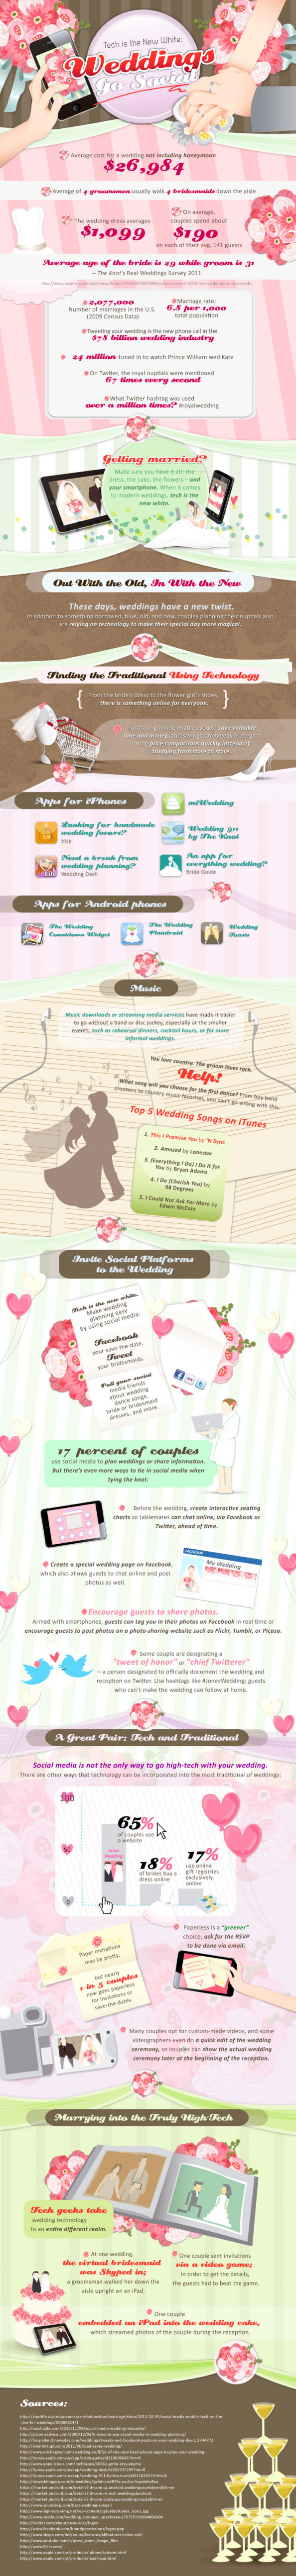 Tech Is The New White: Weddings Go Social Infographic